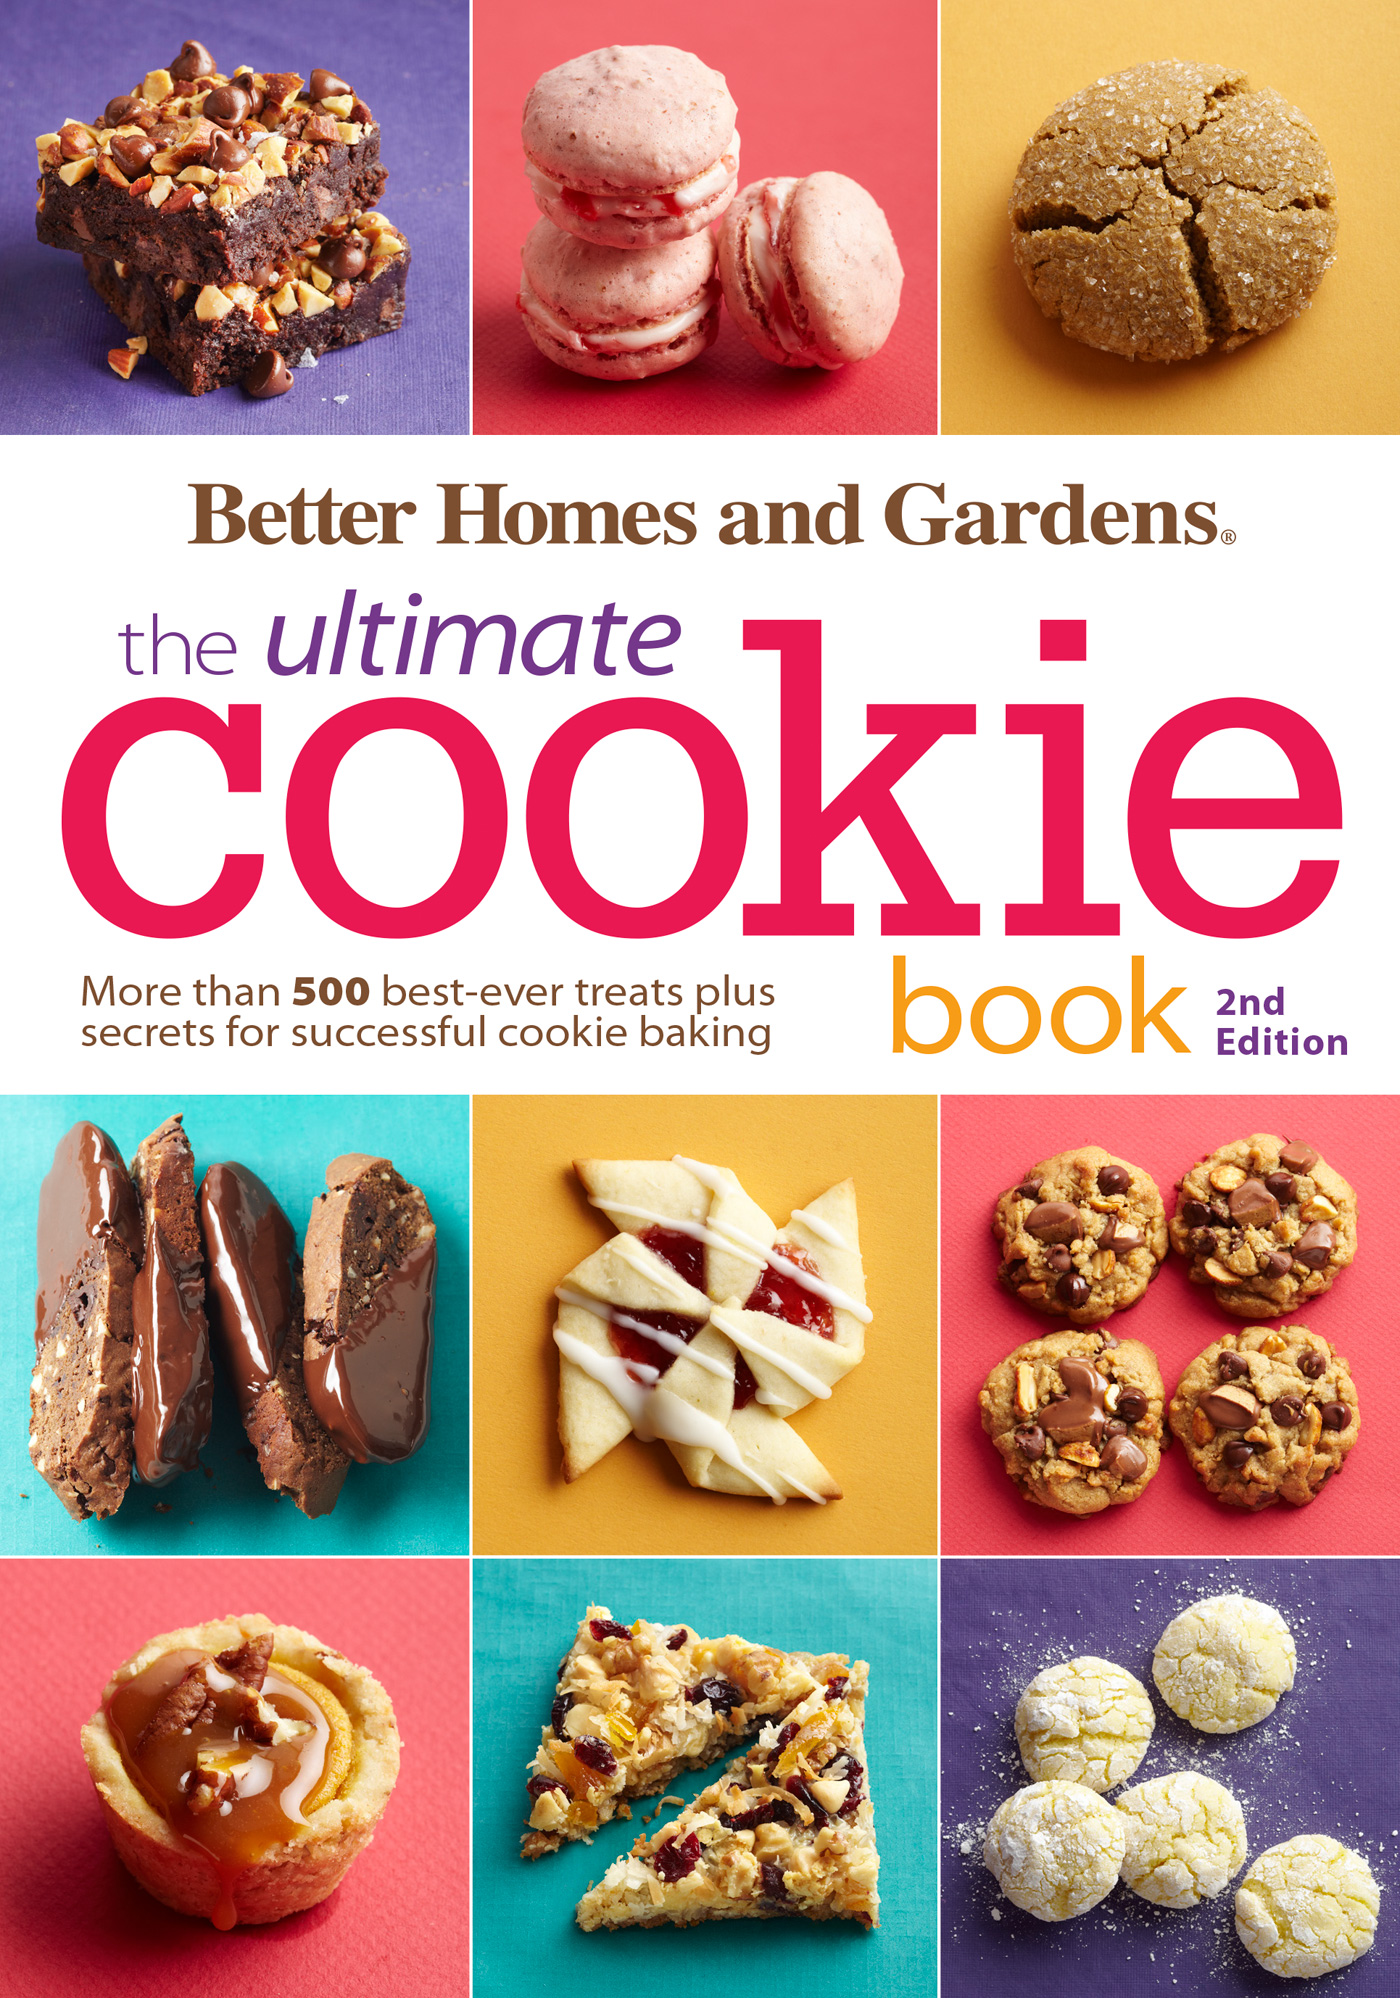 Better Homes and Gardens The Ultimate Cookie Book, Second Edition-9780544339293